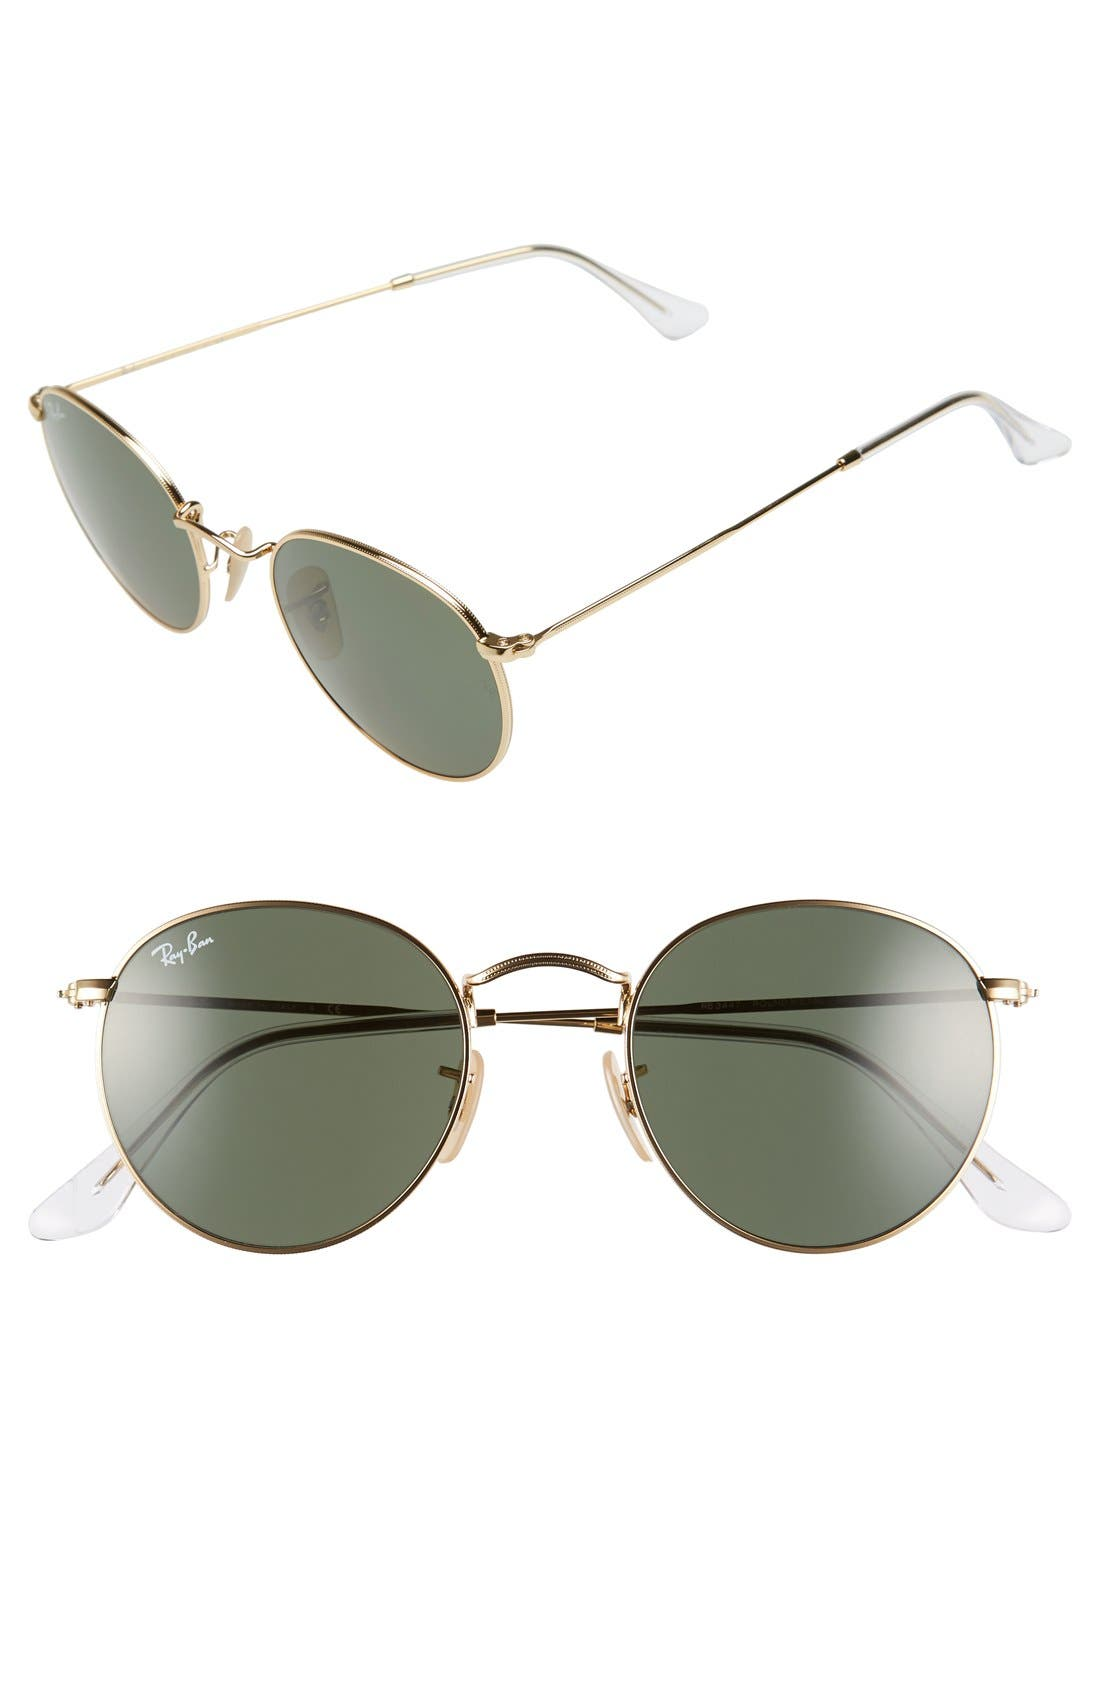 7dc3ea0a27d4 Round Ray-Ban Sunglasses